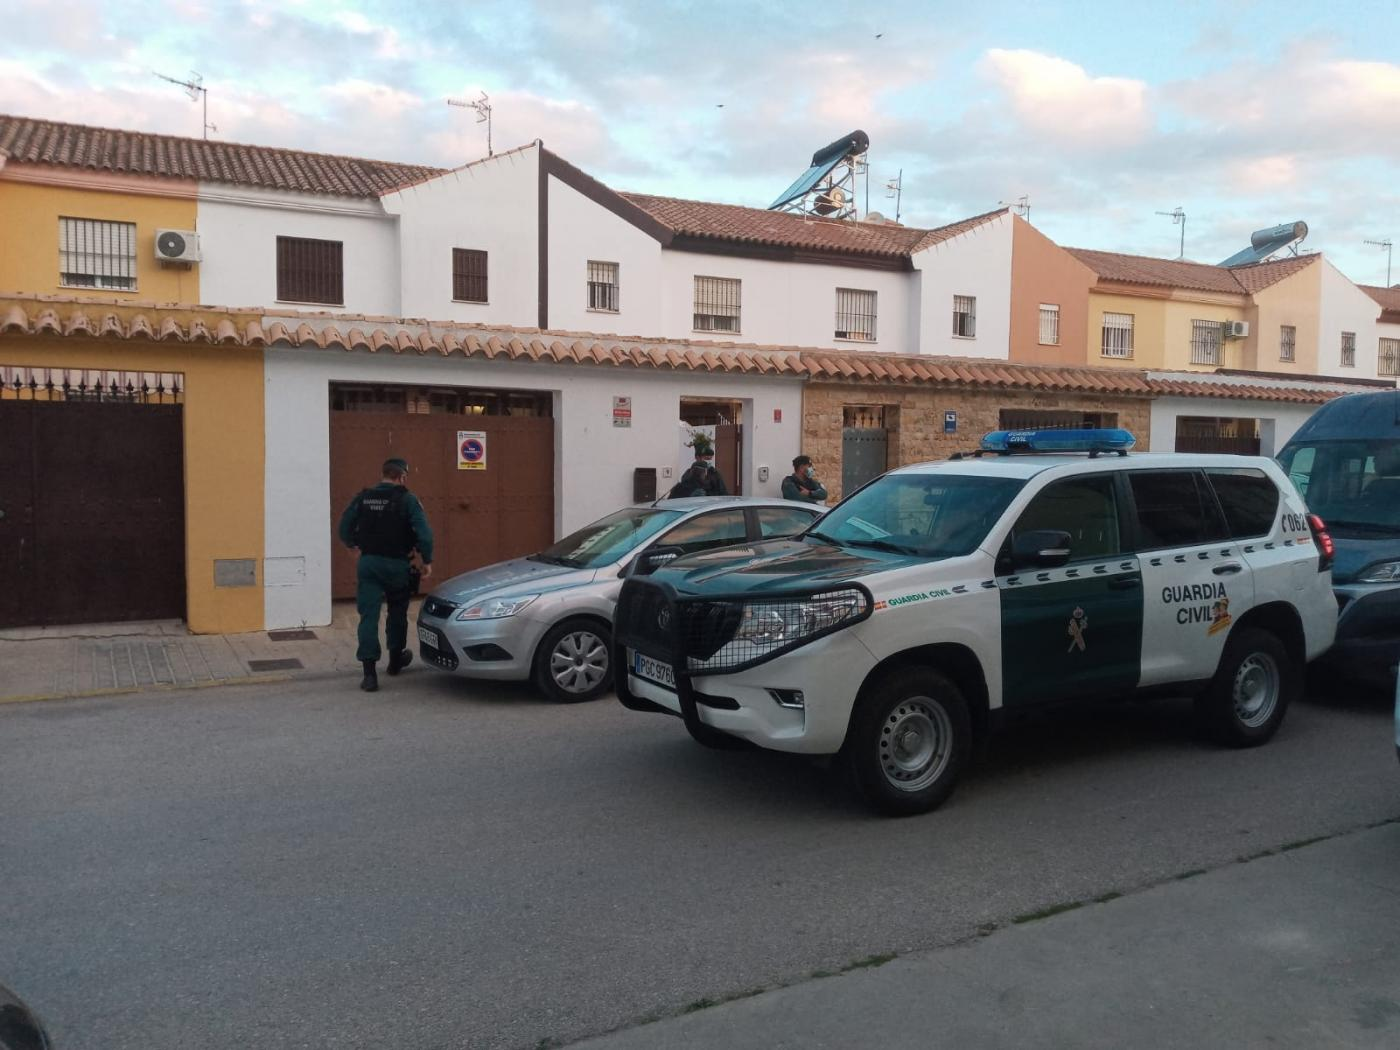 Registro de la Guardia Civil en Sanlúcar. OPC